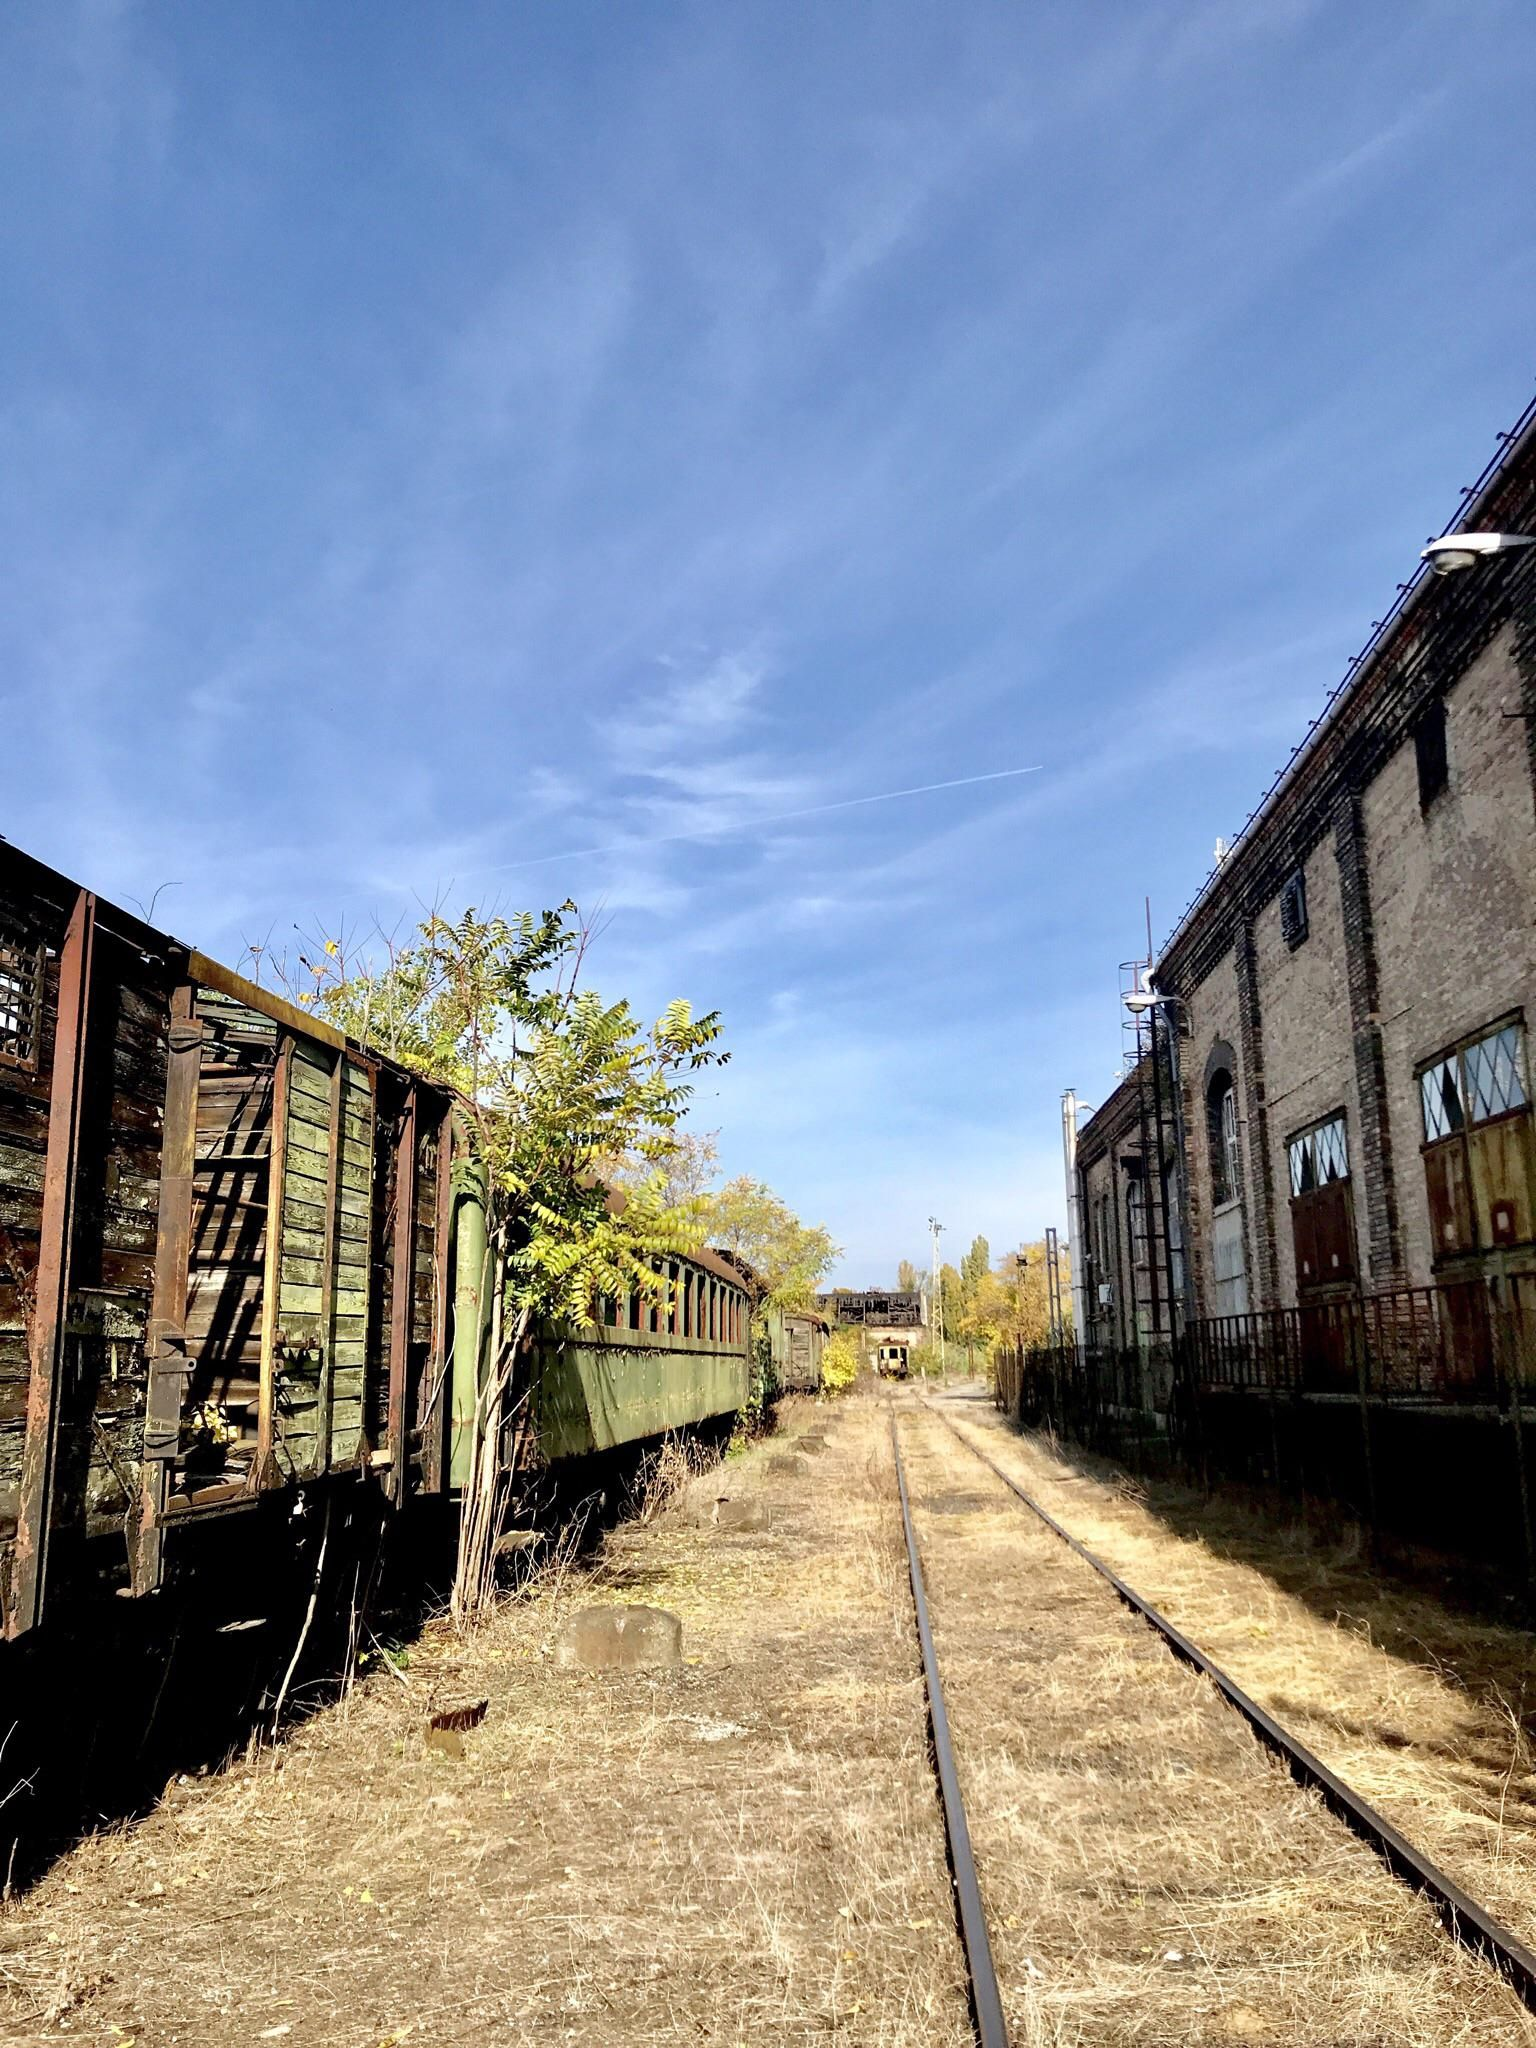 This weekend me and my friends hit up this place we found in someones ig post. This is the heart of Budapest Hungary and our visit was not so legal. There was also a big abandoned hangar full of trains (even steam trains) and cars.